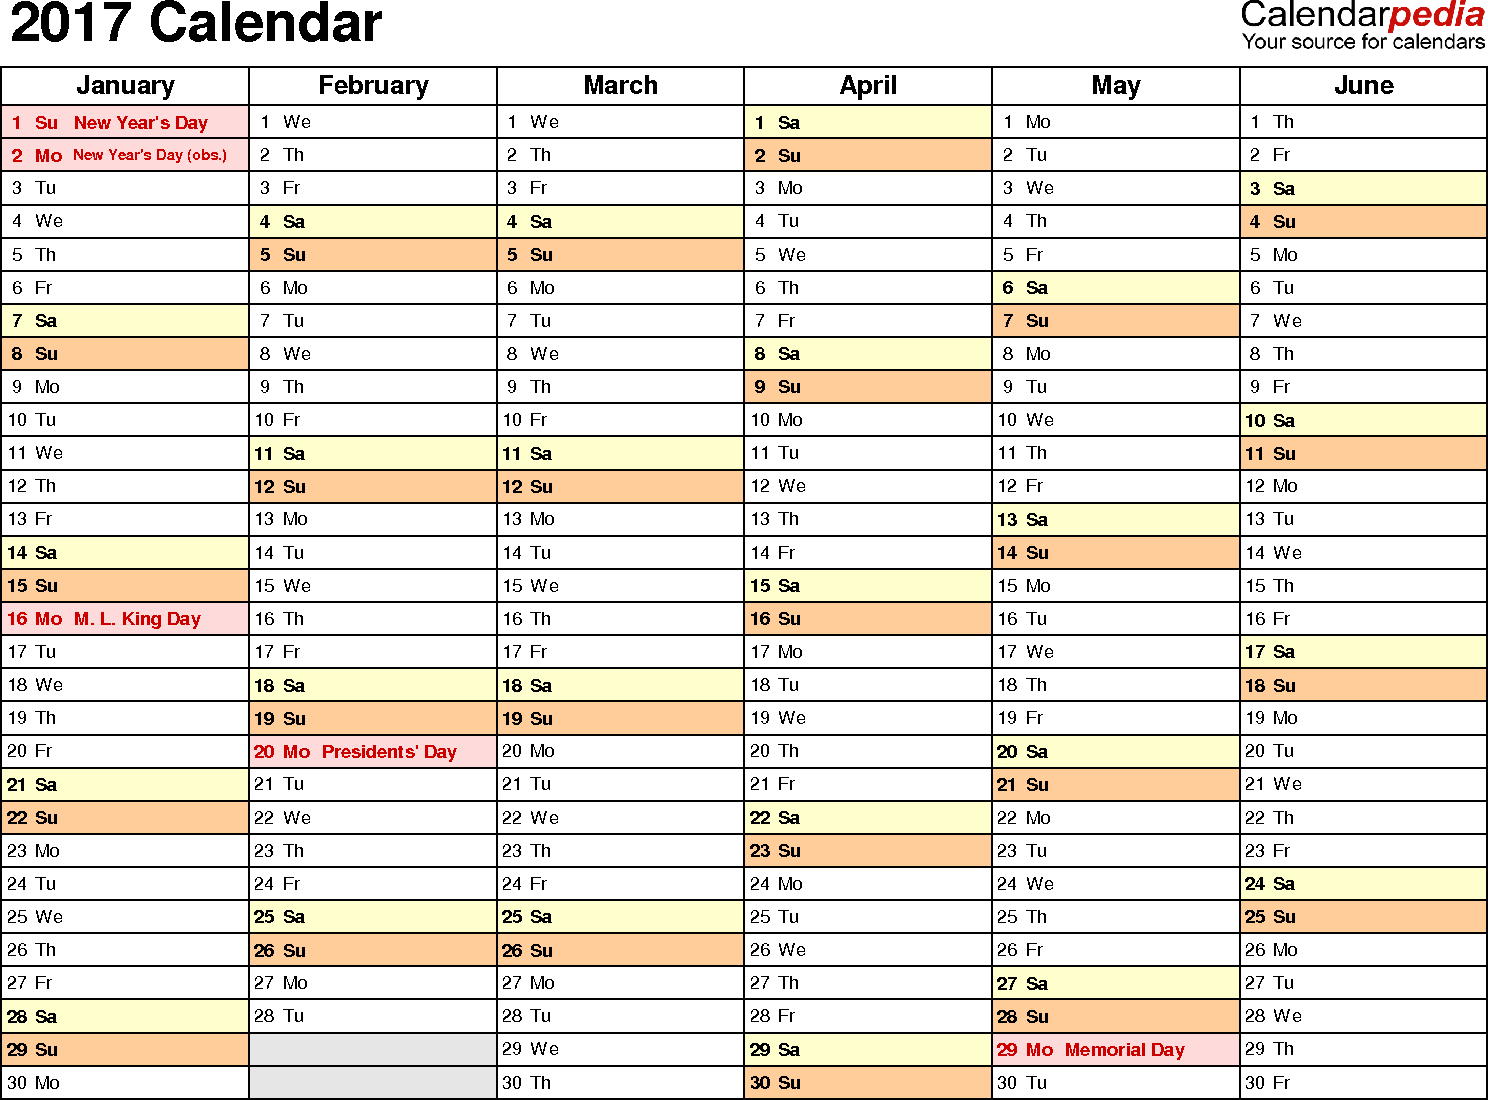 Ediblewildsus  Sweet  Calendar  Download  Free Printable Excel Templates Xls With Gorgeous Template   Calendar For Excel Months Horizontally  Pages Landscape Orientation With Beauteous Excel Divide By Zero Also Slope Function Excel In Addition Excel Delete Pivot Table And How Do You Combine Cells In Excel As Well As Microsoft Excel Cannot Open Or Save Any More Documents Additionally How To Merge Cells In Excel  From Calendarpediacom With Ediblewildsus  Gorgeous  Calendar  Download  Free Printable Excel Templates Xls With Beauteous Template   Calendar For Excel Months Horizontally  Pages Landscape Orientation And Sweet Excel Divide By Zero Also Slope Function Excel In Addition Excel Delete Pivot Table From Calendarpediacom